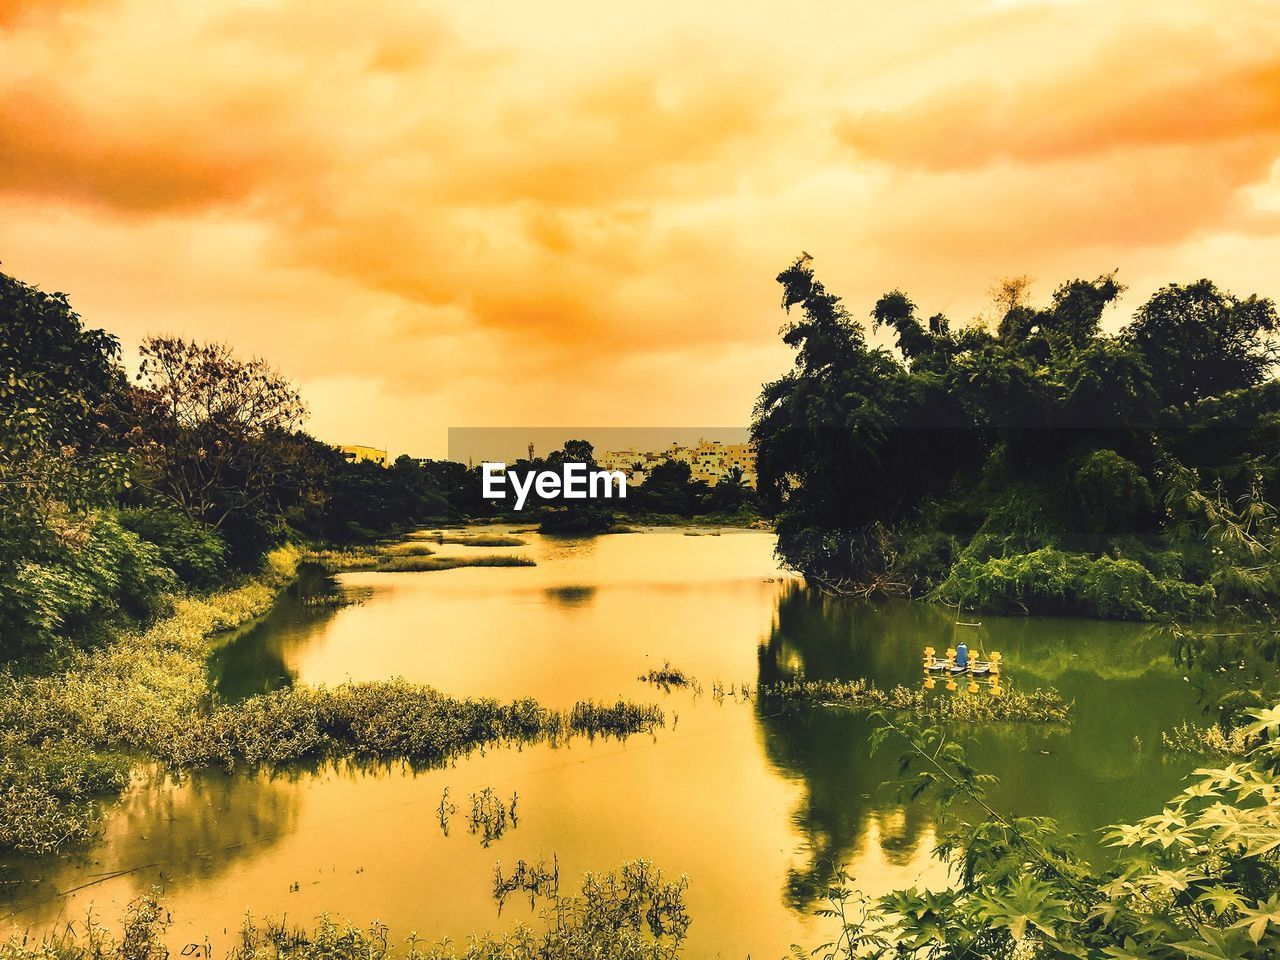 sky, water, tree, cloud - sky, tranquility, beauty in nature, sunset, tranquil scene, scenics - nature, plant, reflection, lake, nature, no people, idyllic, orange color, waterfront, non-urban scene, growth, reflection lake